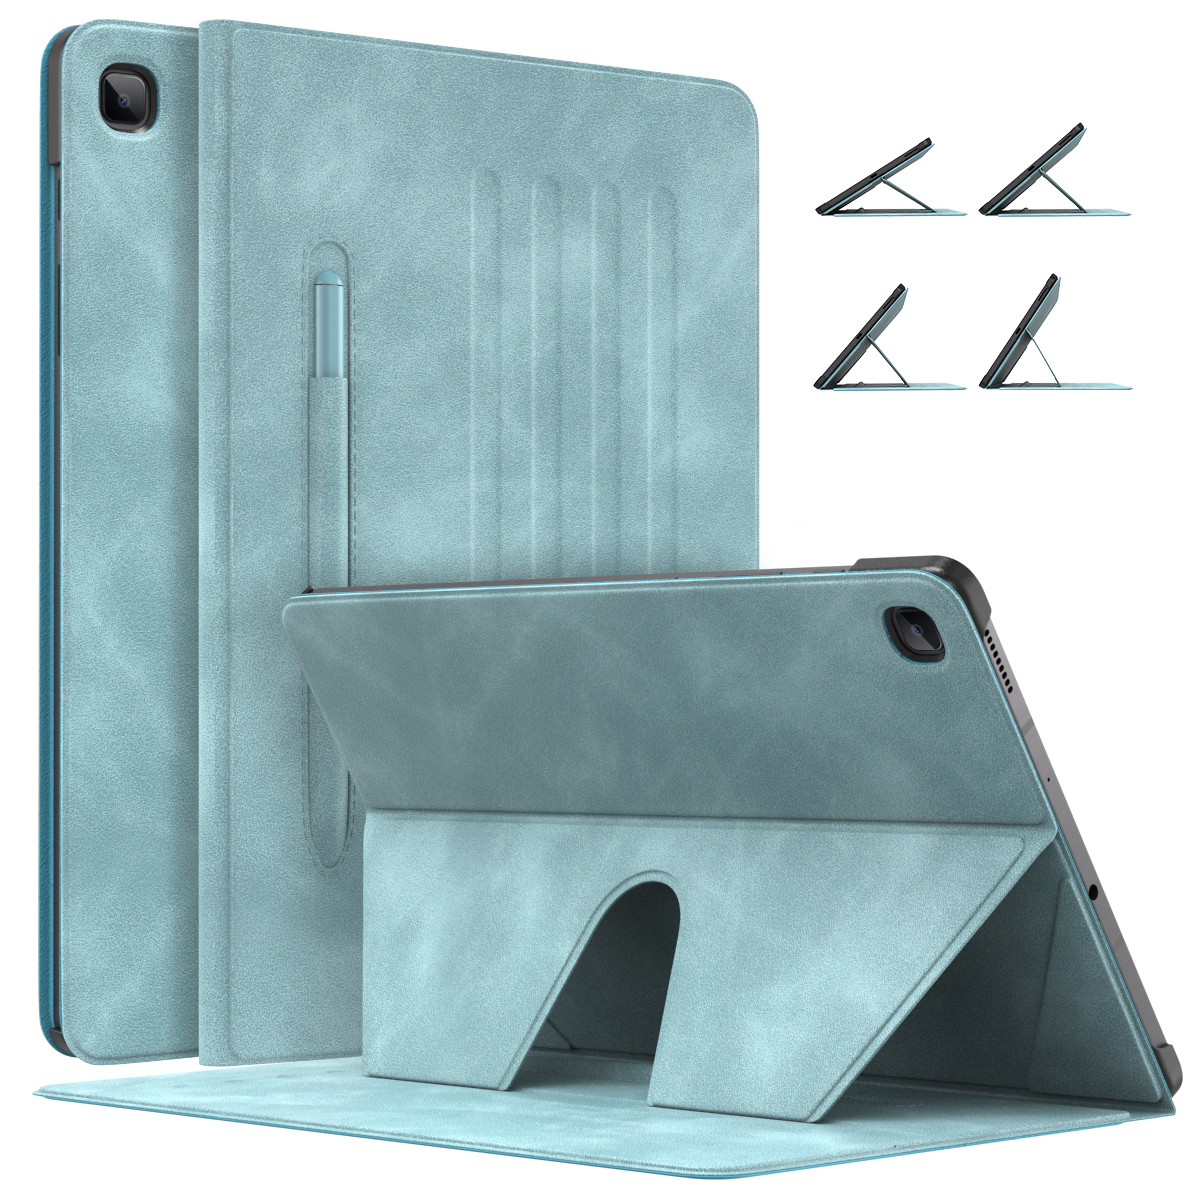 Tablet Case for Galaxy Tab S6 Lite 2020,Slim Smart Cover Shell Case with Auto-Wake/Sleep&Pen Holder& Multi-Angle Stand  S6 Lite